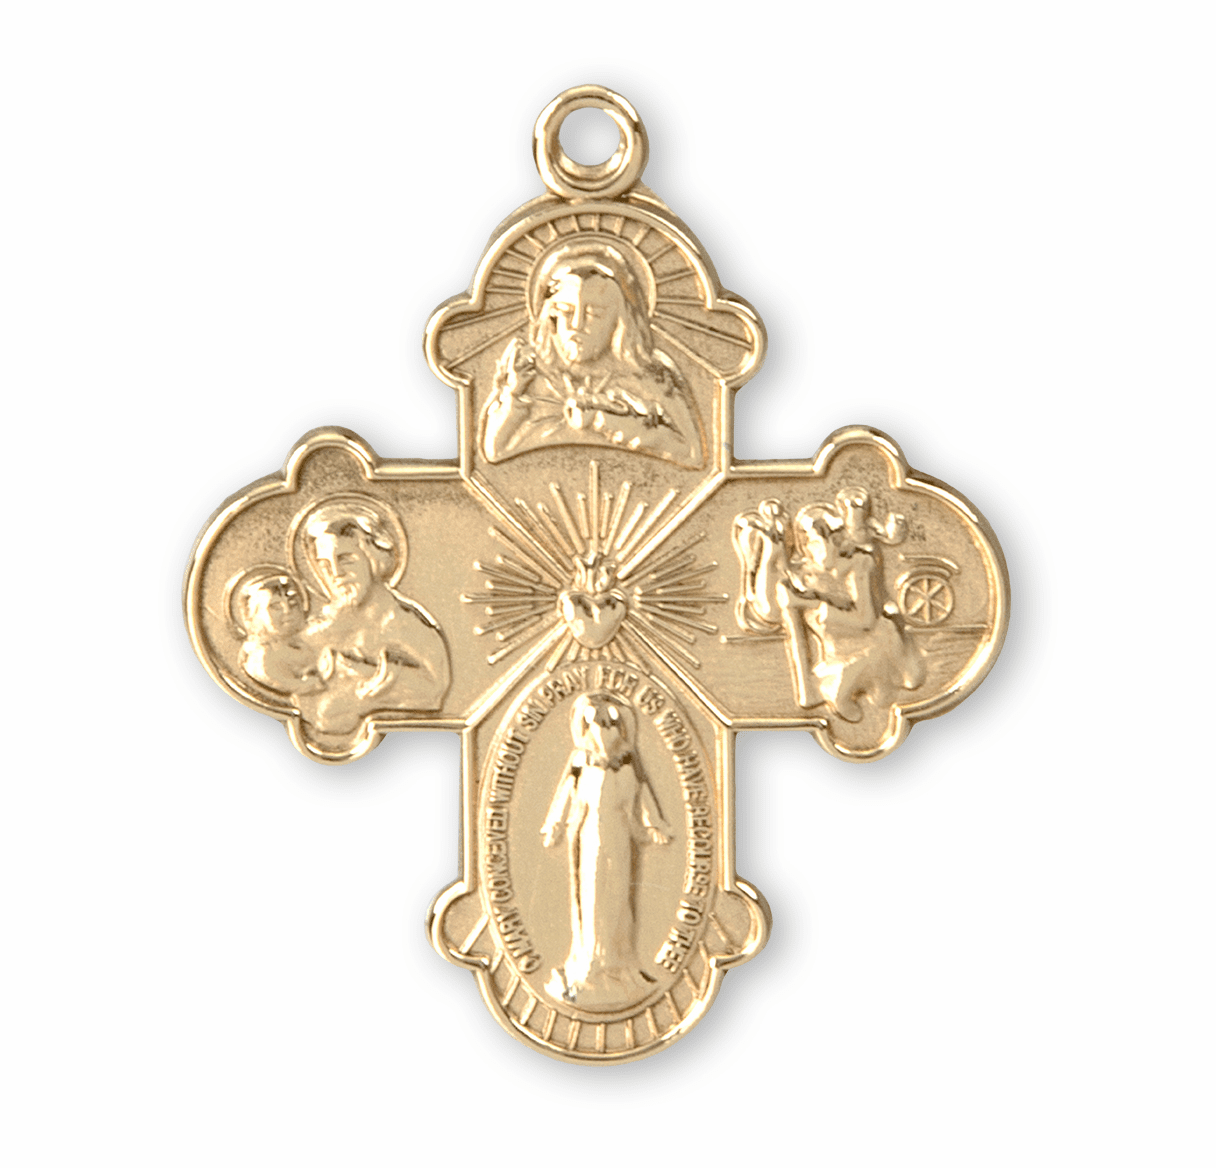 HMH Religious Solid 14kt Gold 4-Way Cross Medal with Jump Ring